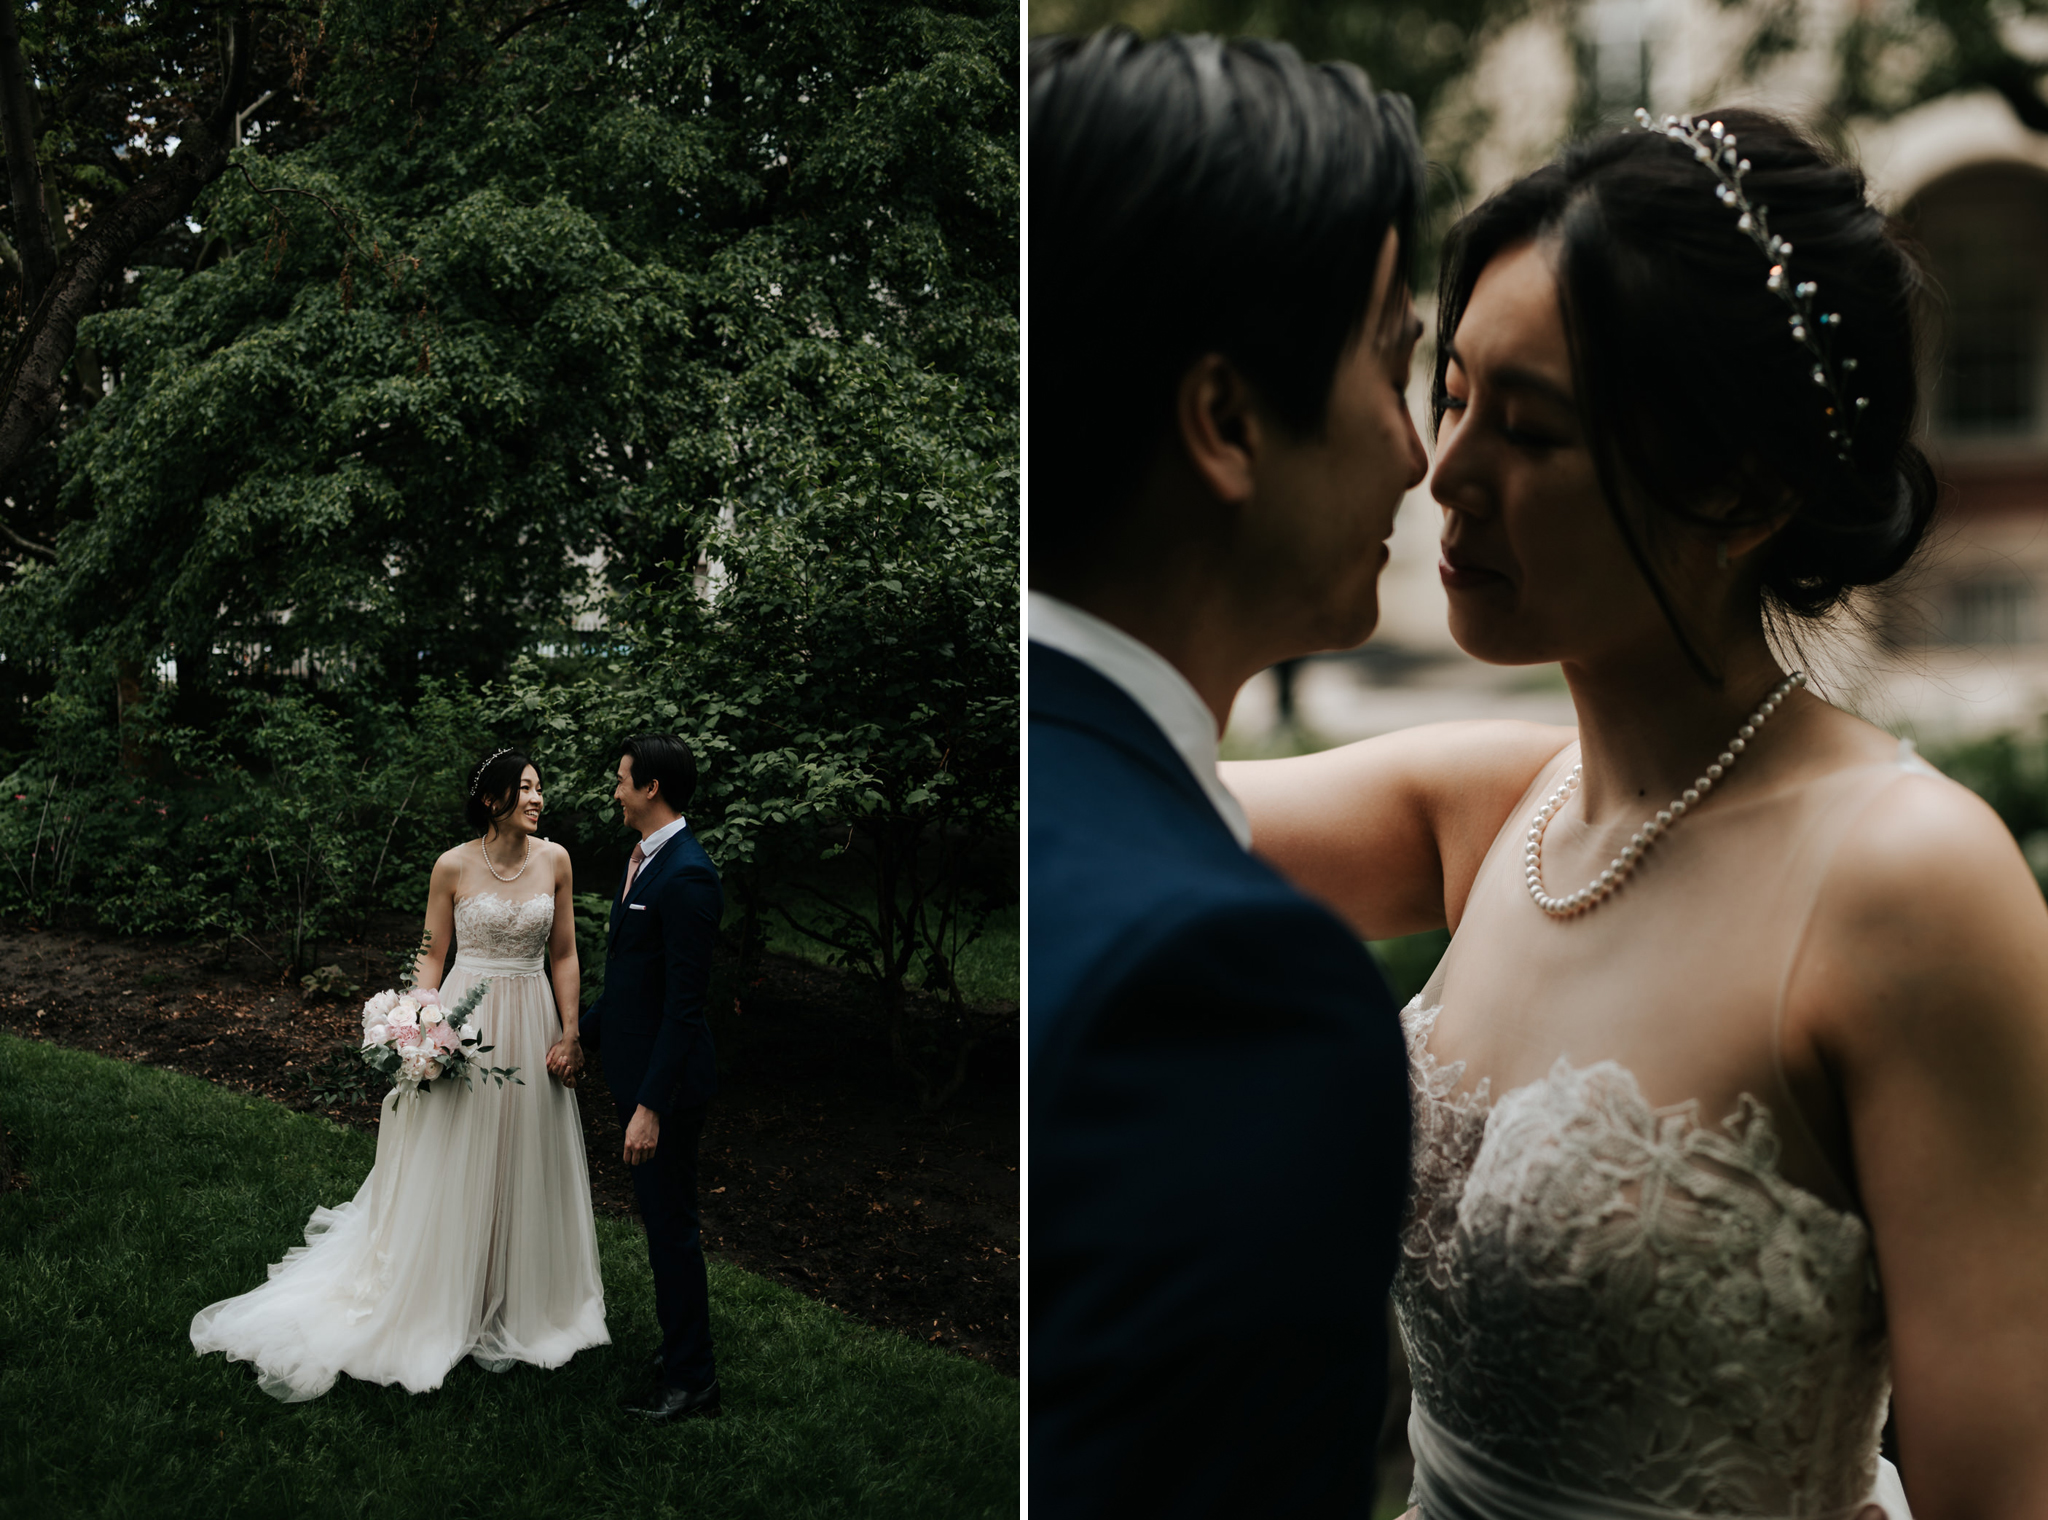 couple on wedding day at Osgoode Hall